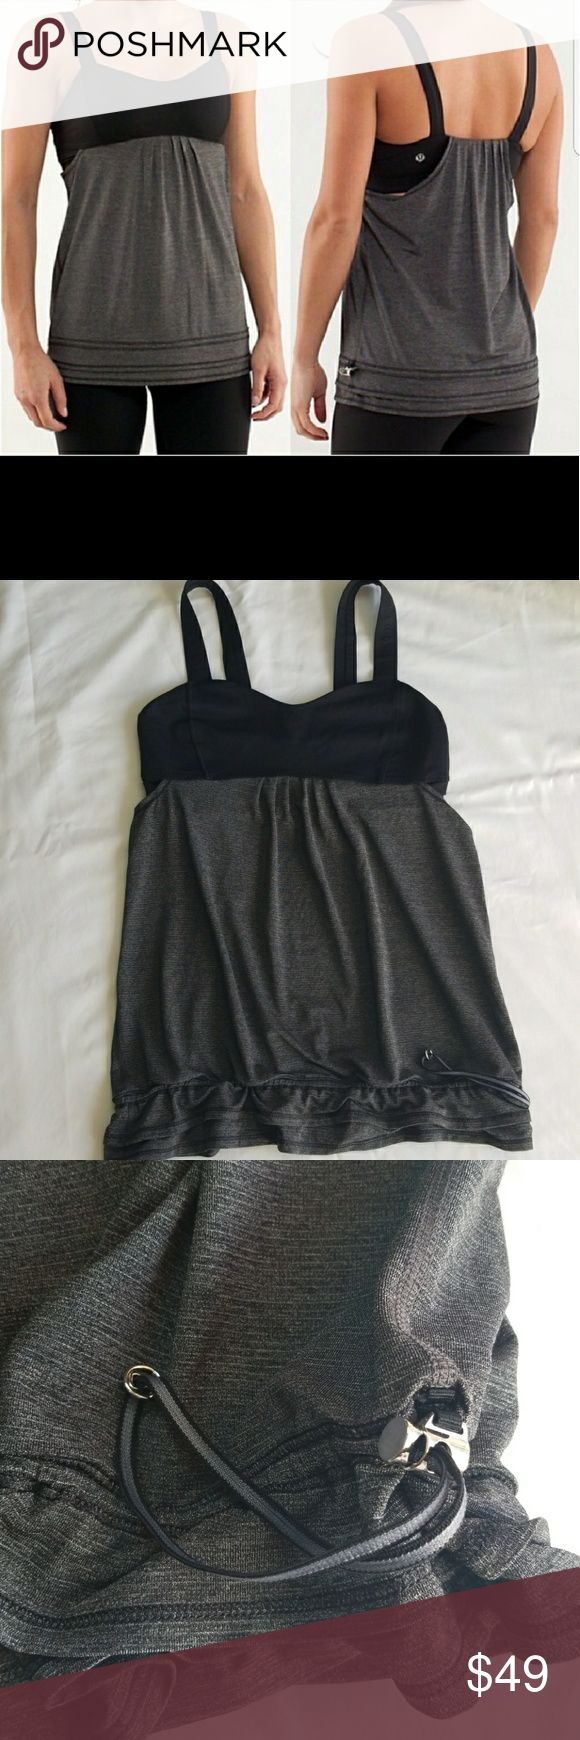 Lululemon tank top size 6 Excellent condition lululemon athletica Tops Tank Tops